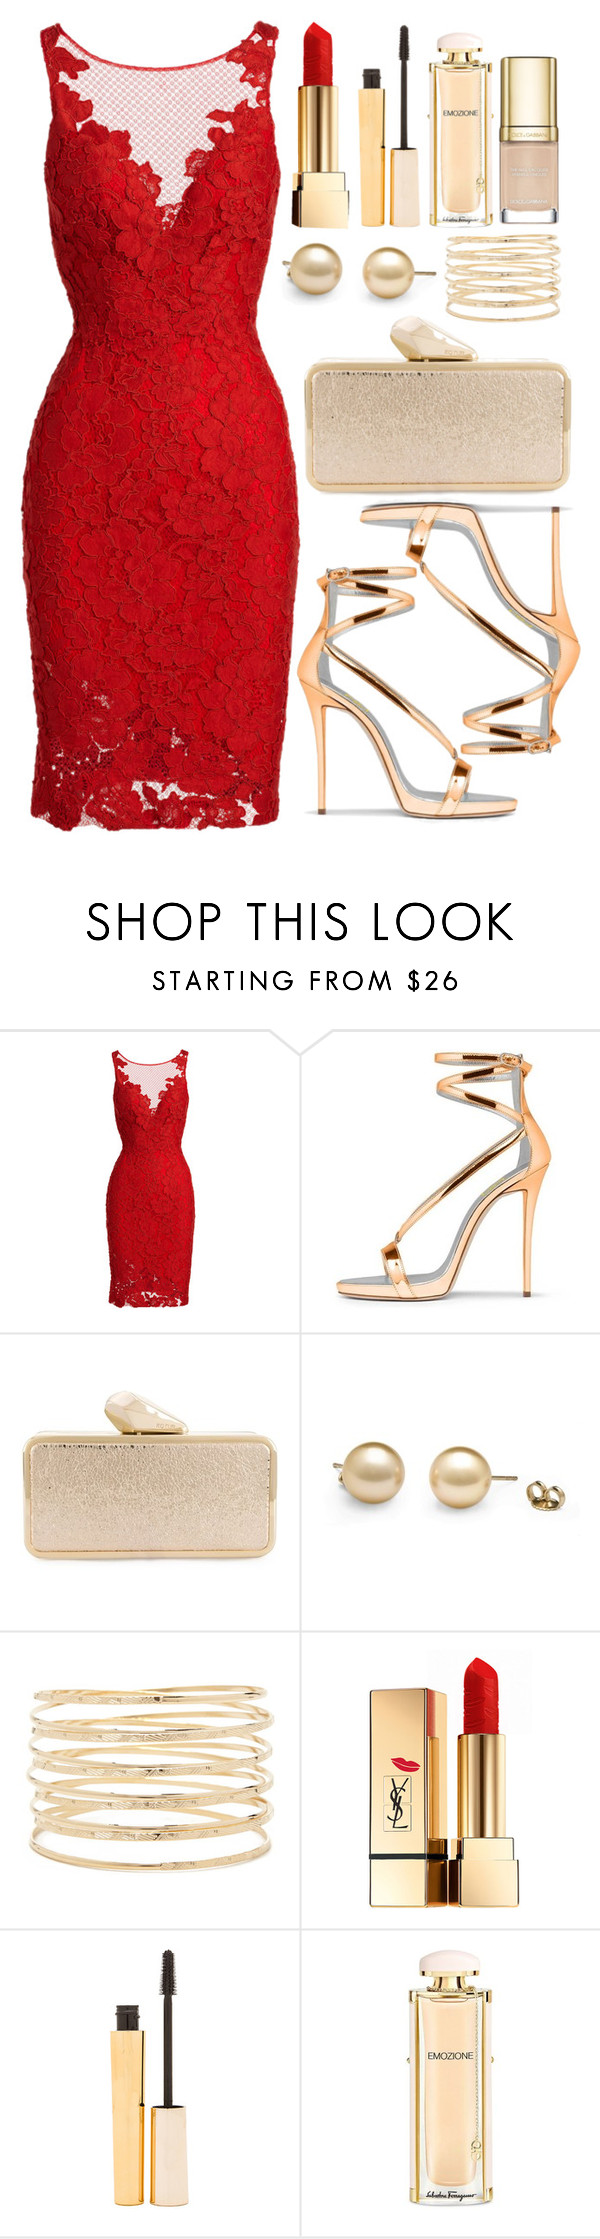 """""""Untitled #4137"""" by natalyasidunova ❤ liked on Polyvore featuring ML Monique Lhuillier, KOTUR, Forever 21, Yves Saint Laurent, Stila, Salvatore Ferragamo and Dolce&Gabbana"""